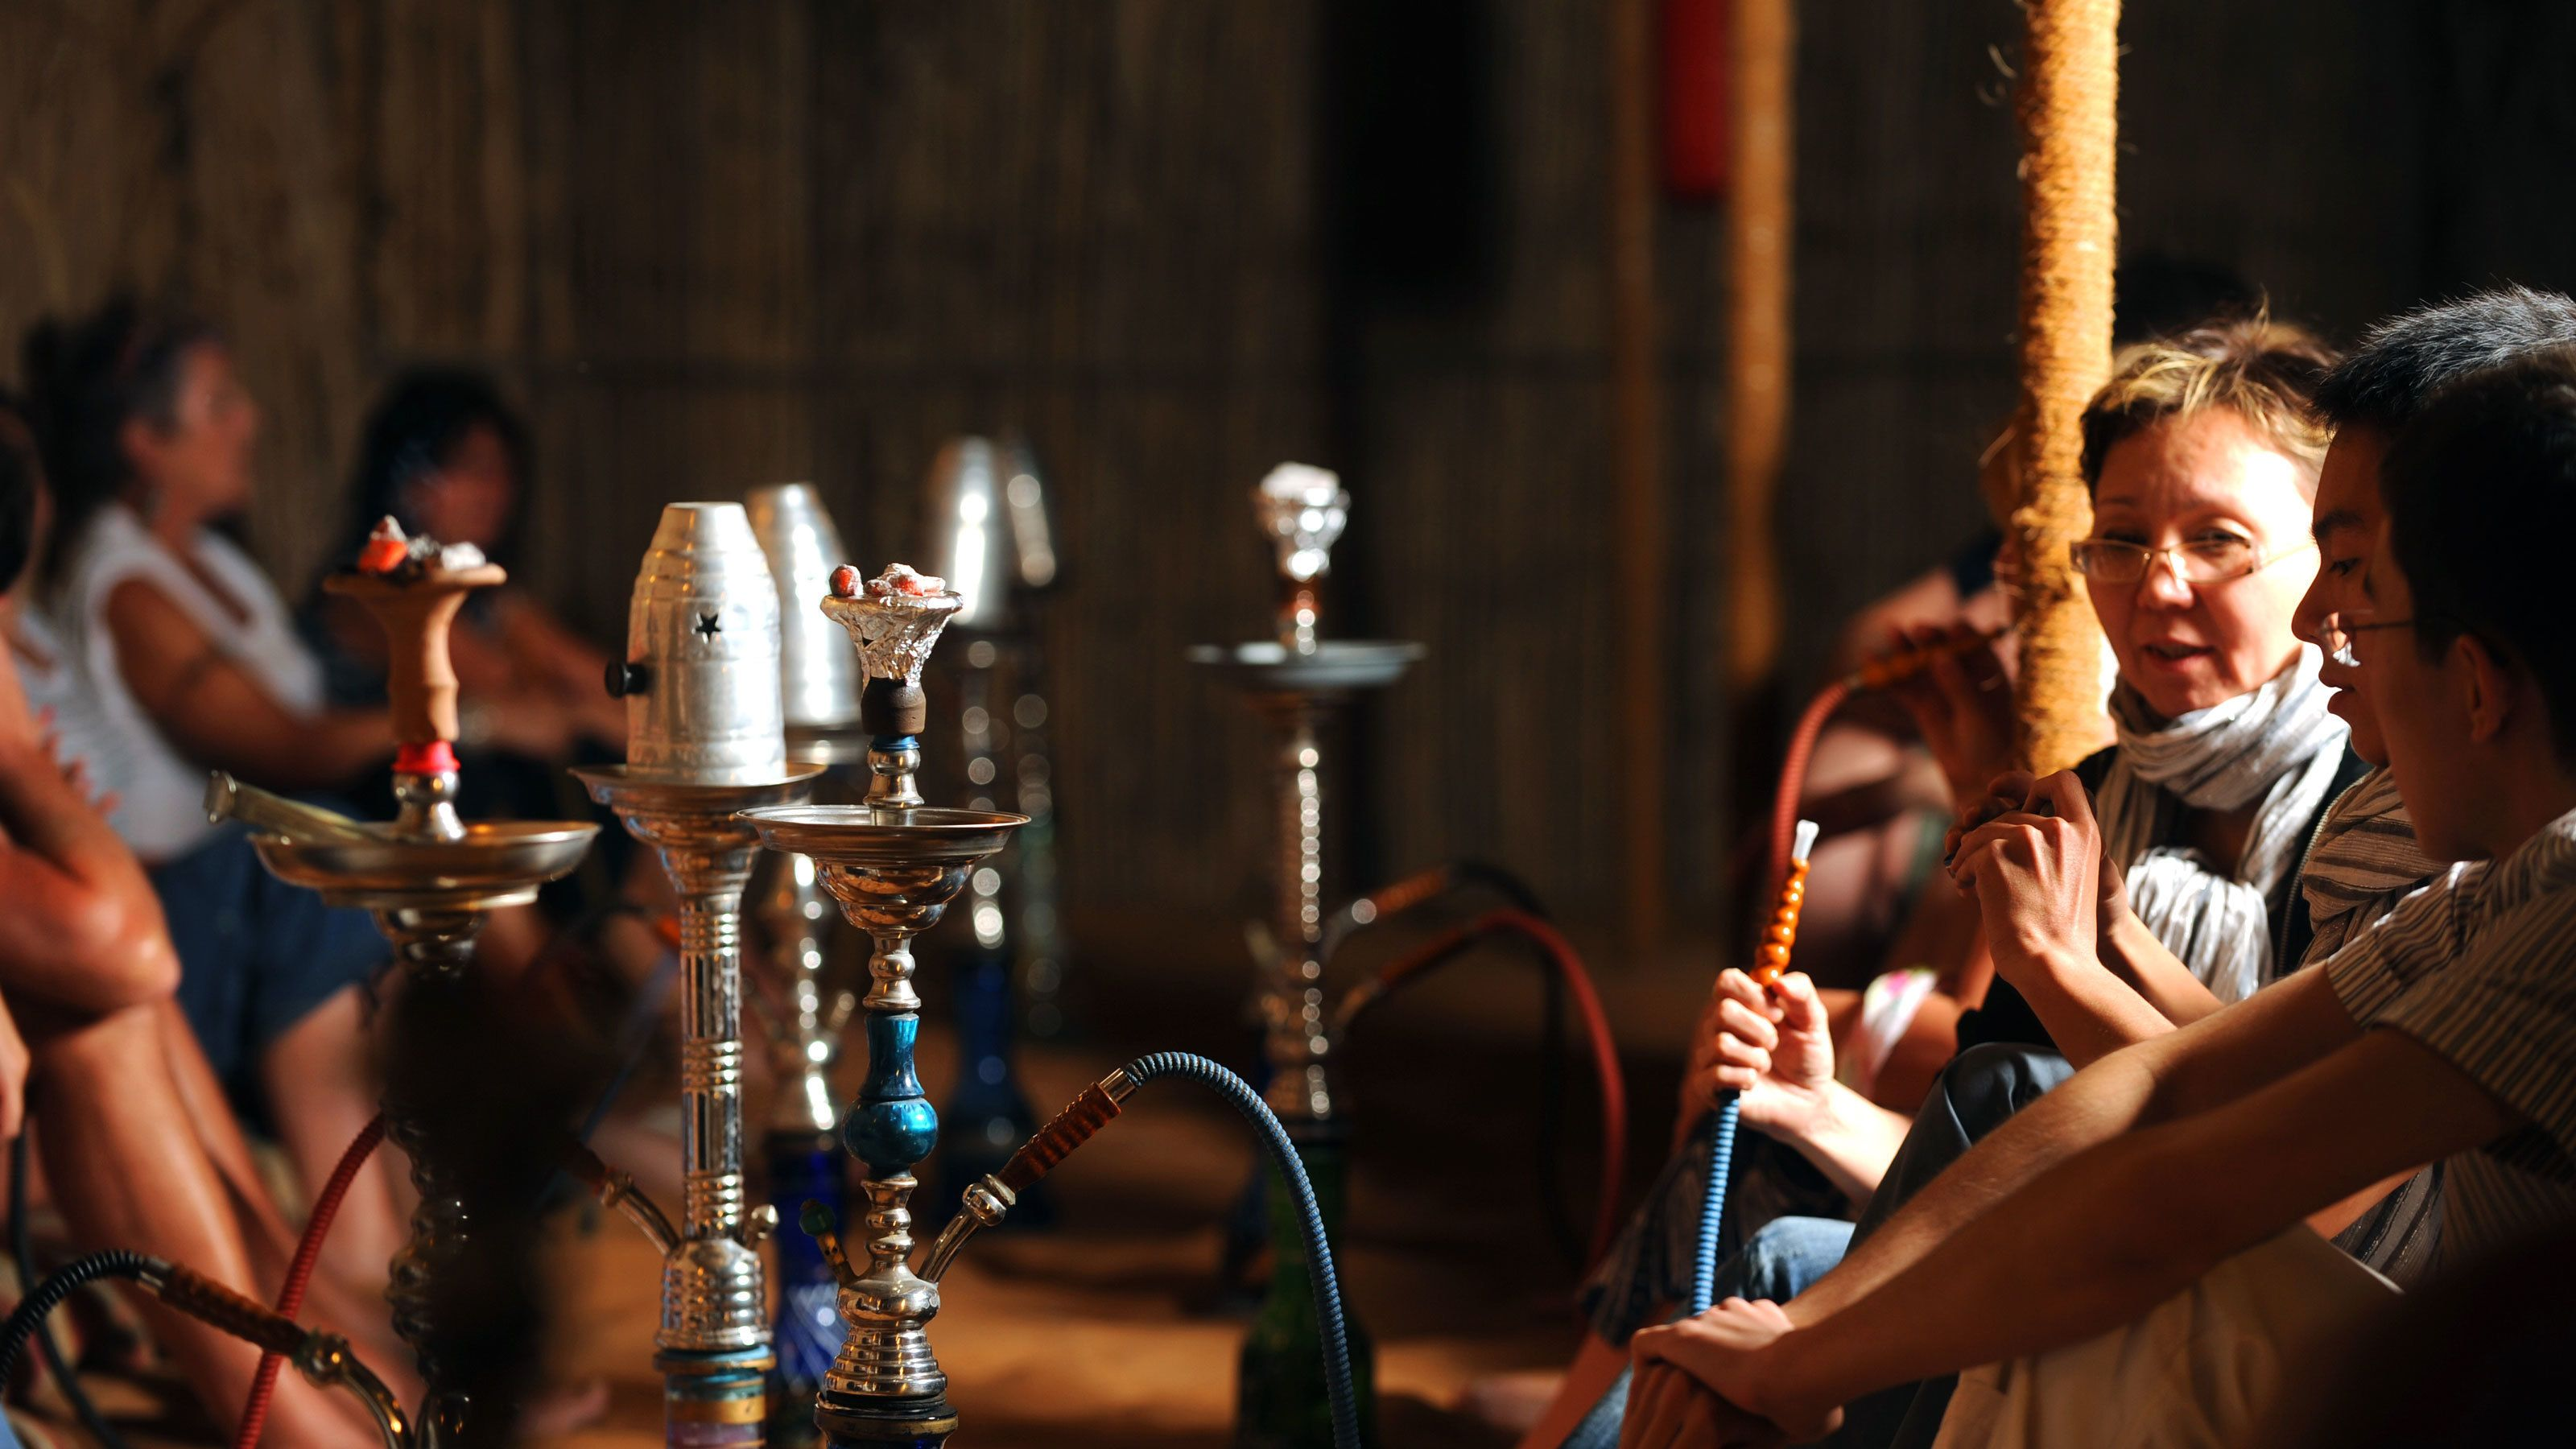 woman and others smoking Arabic sheesha pipe in Dubai